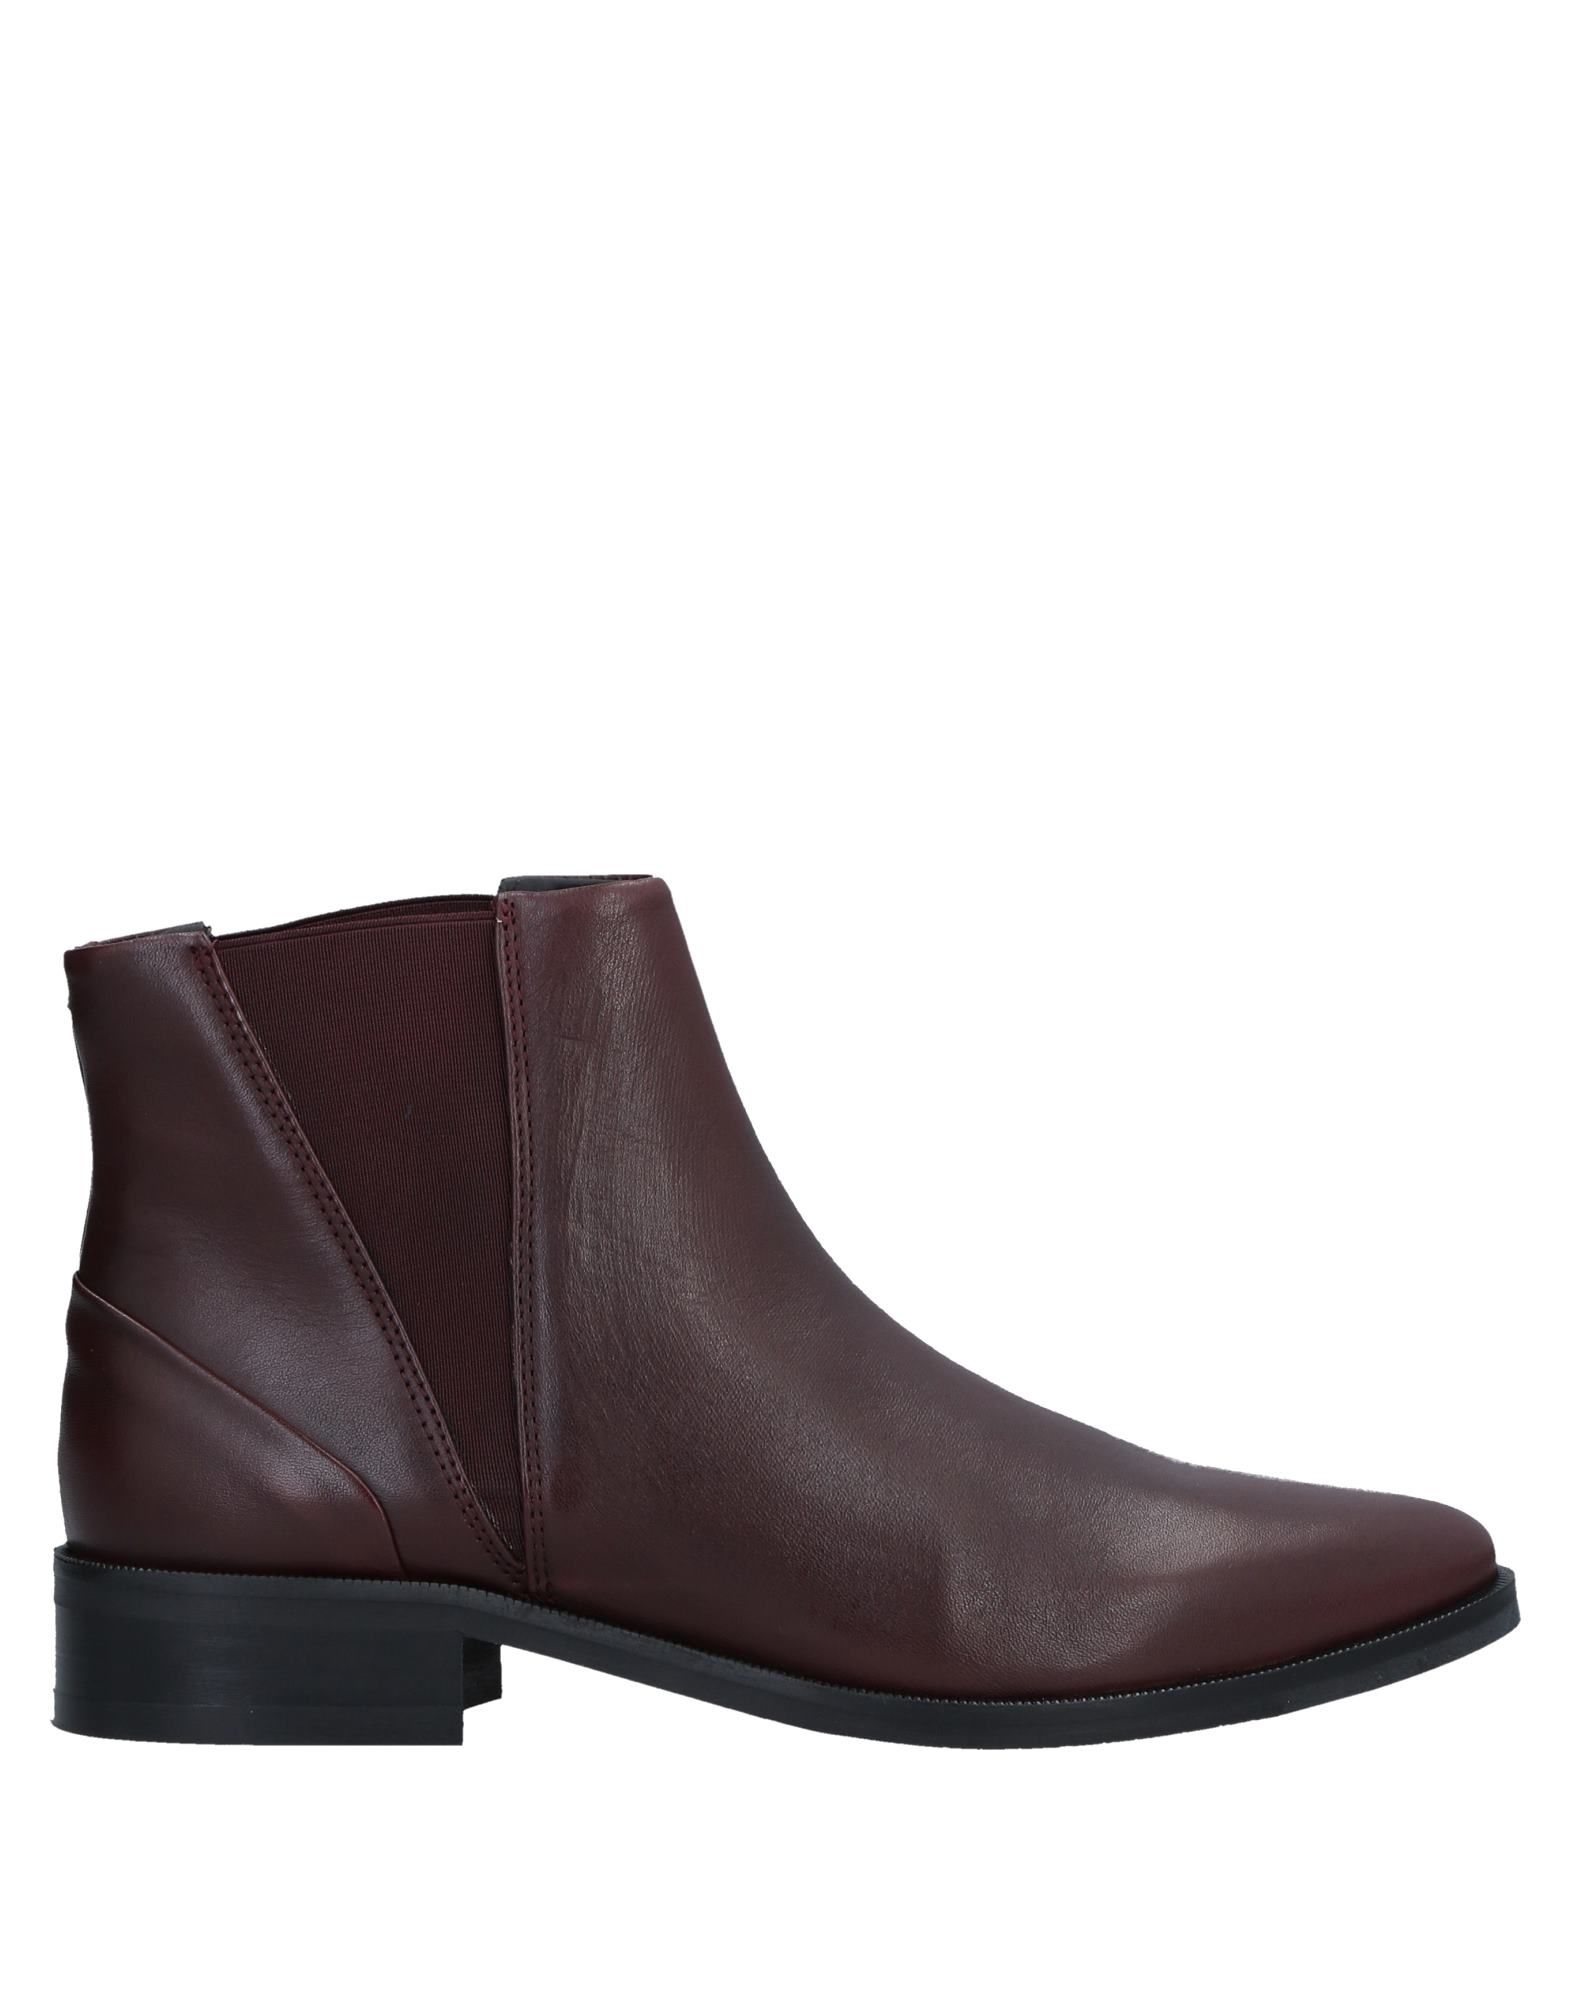 ROYAL REPUBLIQ Ankle Boot in Maroon